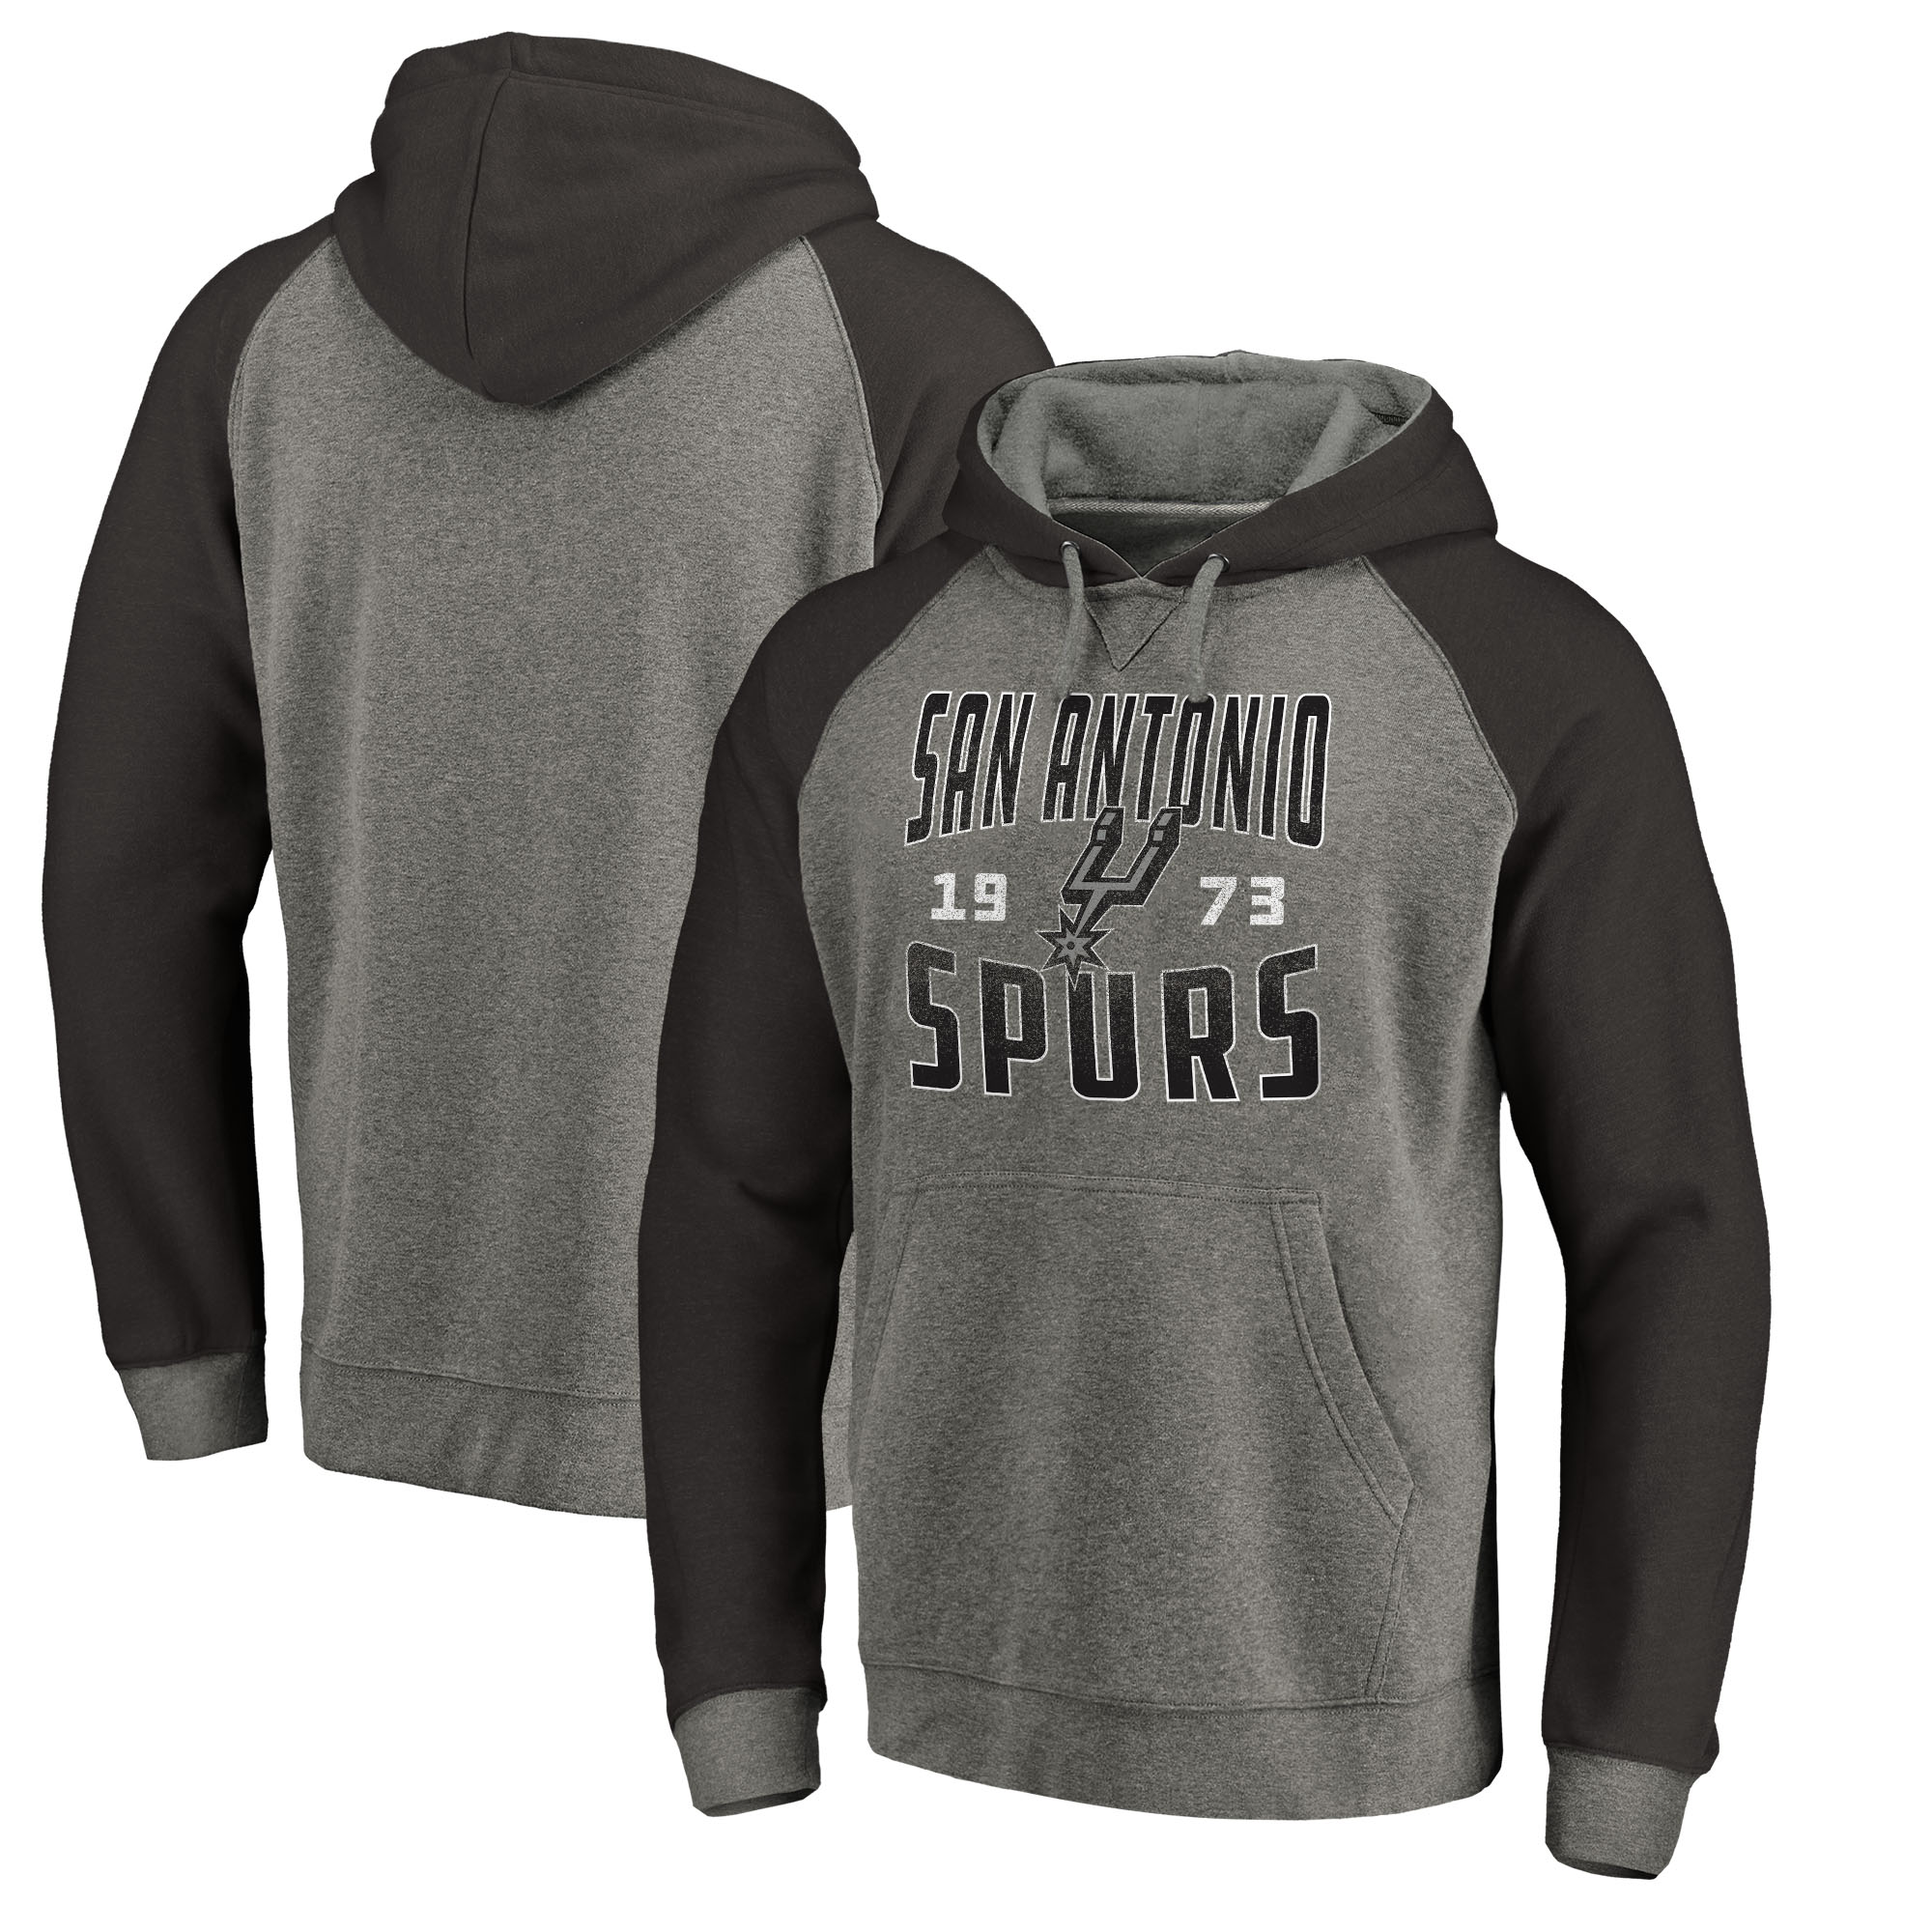 San Antonio Spurs Fanatics Branded Antique Stack Big & Tall Tri-Blend Raglan Pullover Hoodie - Ash